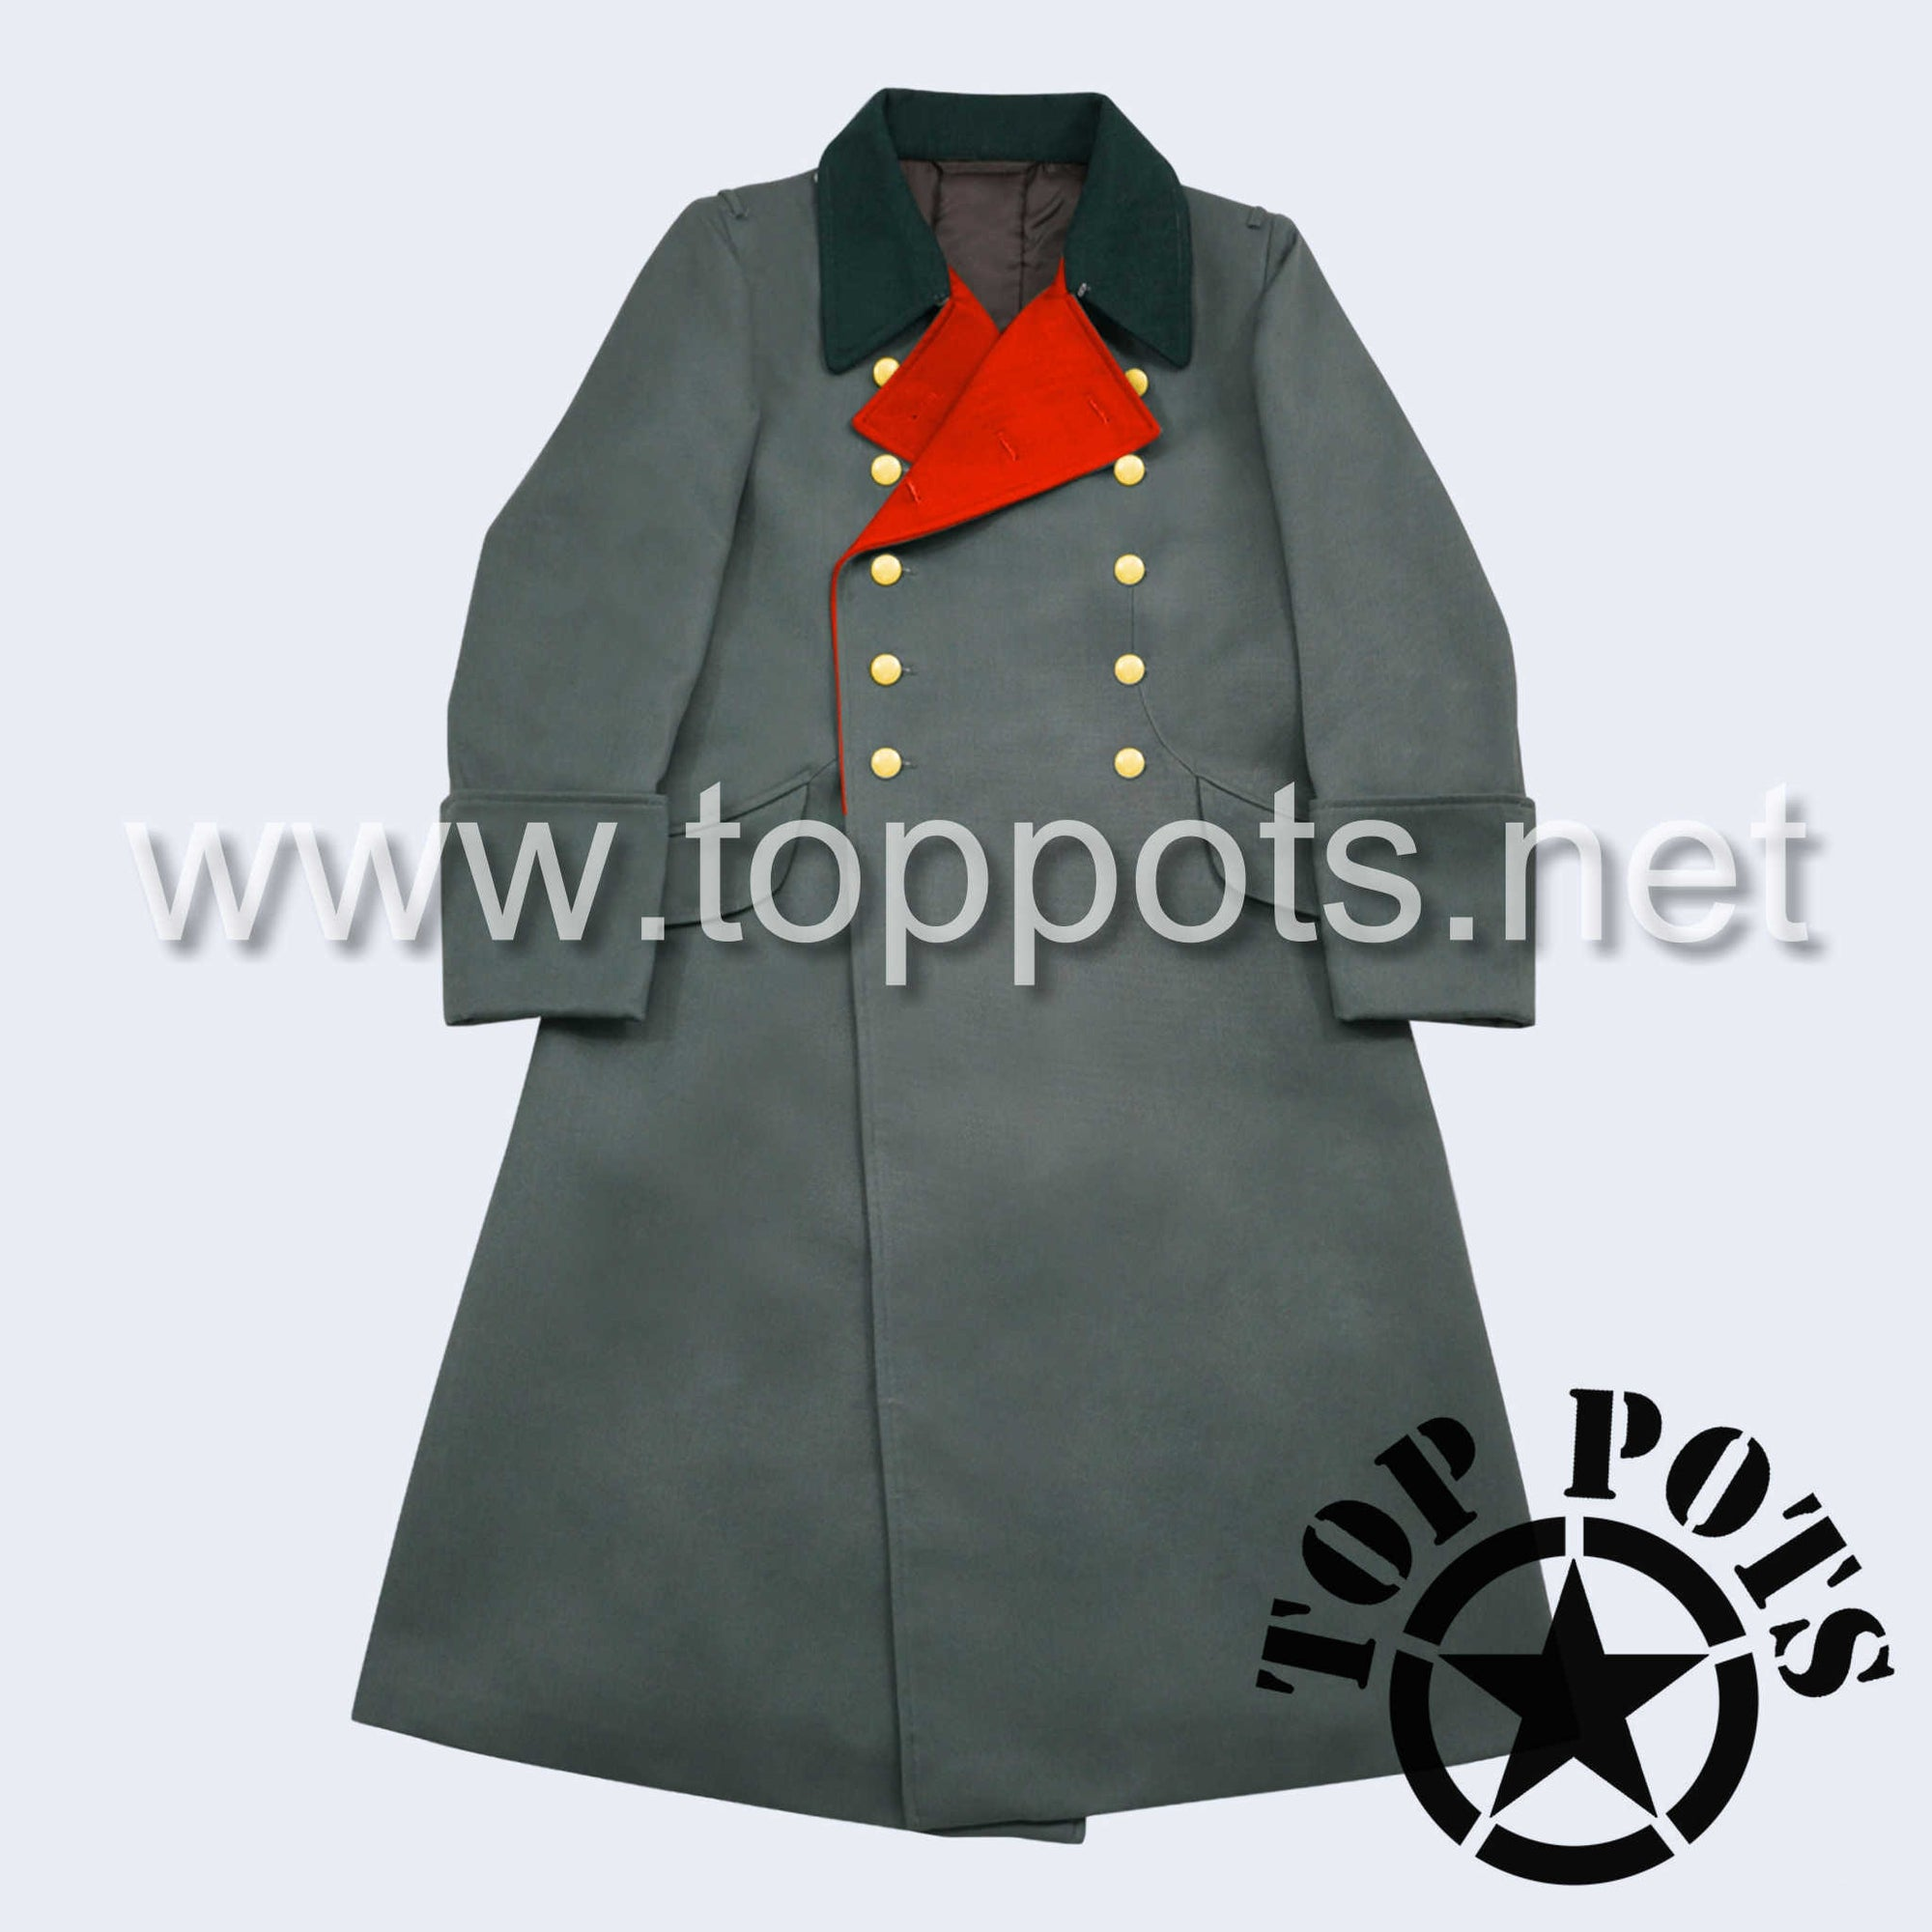 WWII German Army M1936 Waffen SS Uniform Overcoat Greatcoat Winter Jacket Field Grey Gabardine - General